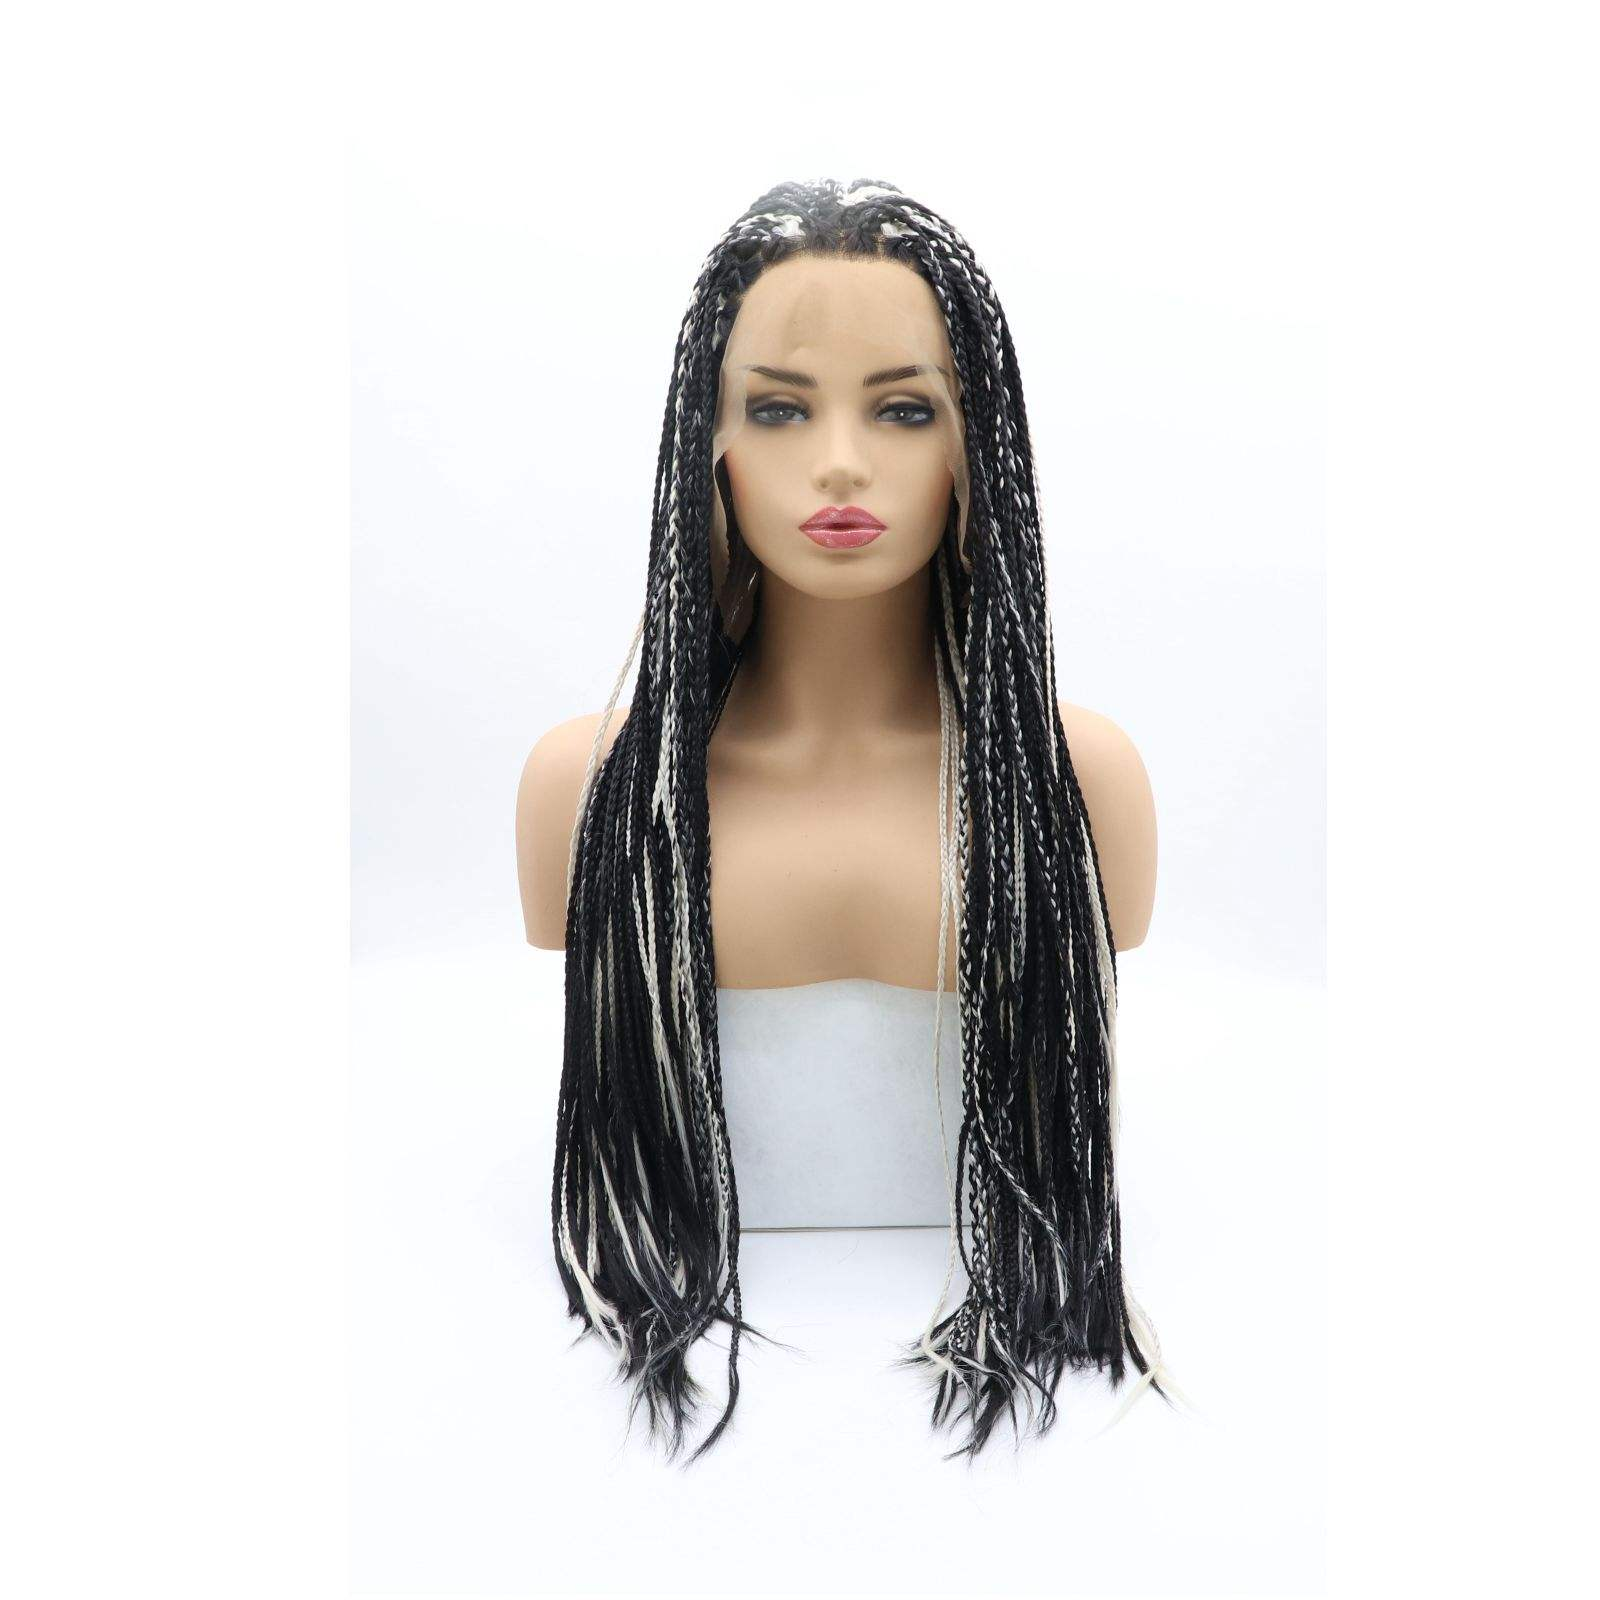 LINDAL hand tied black with highlights fiber resistant to heat 180% density supplier braid wig synthetics hair